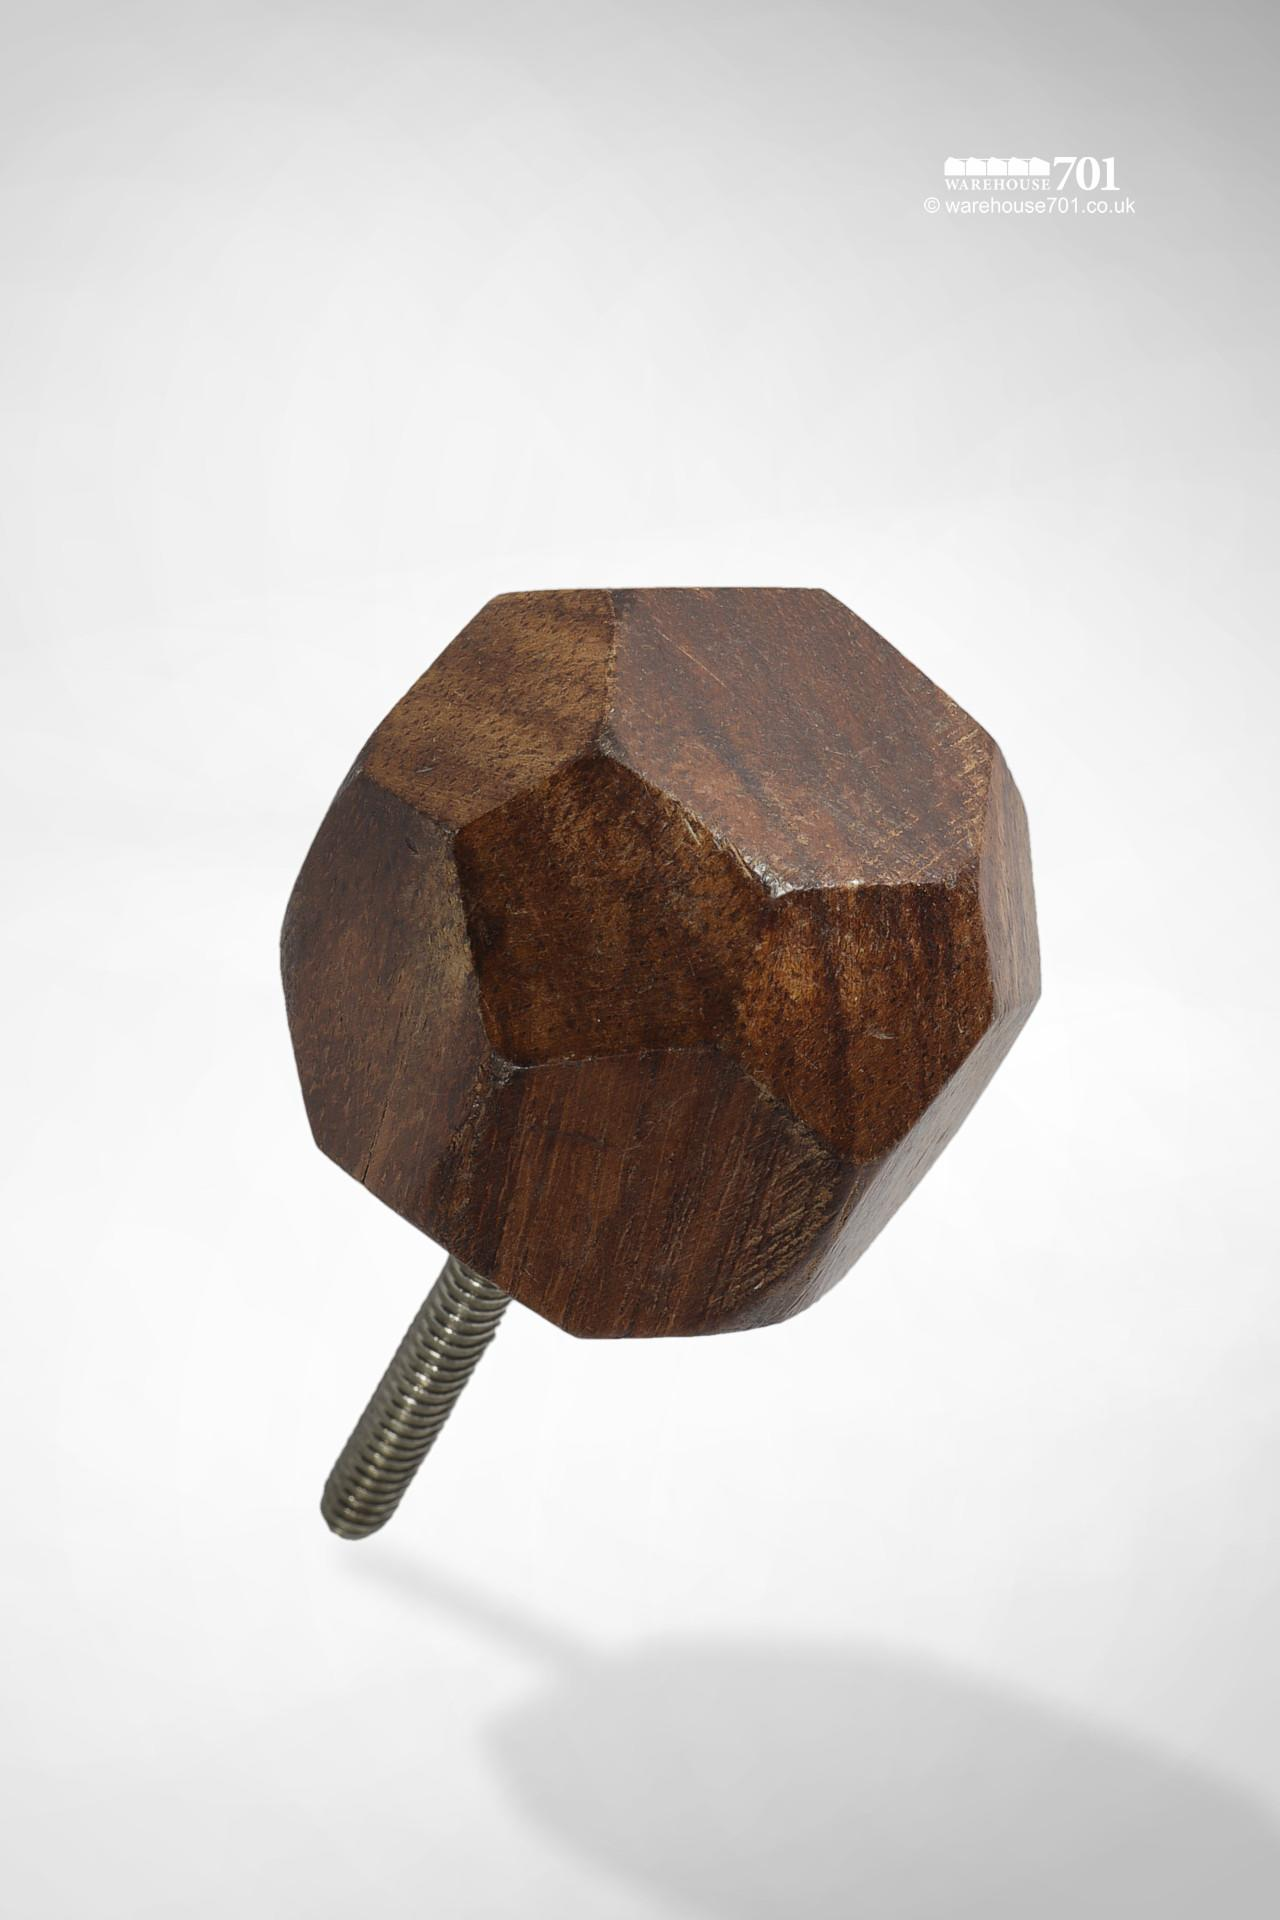 New Faceted Wood Door or Drawer Knob